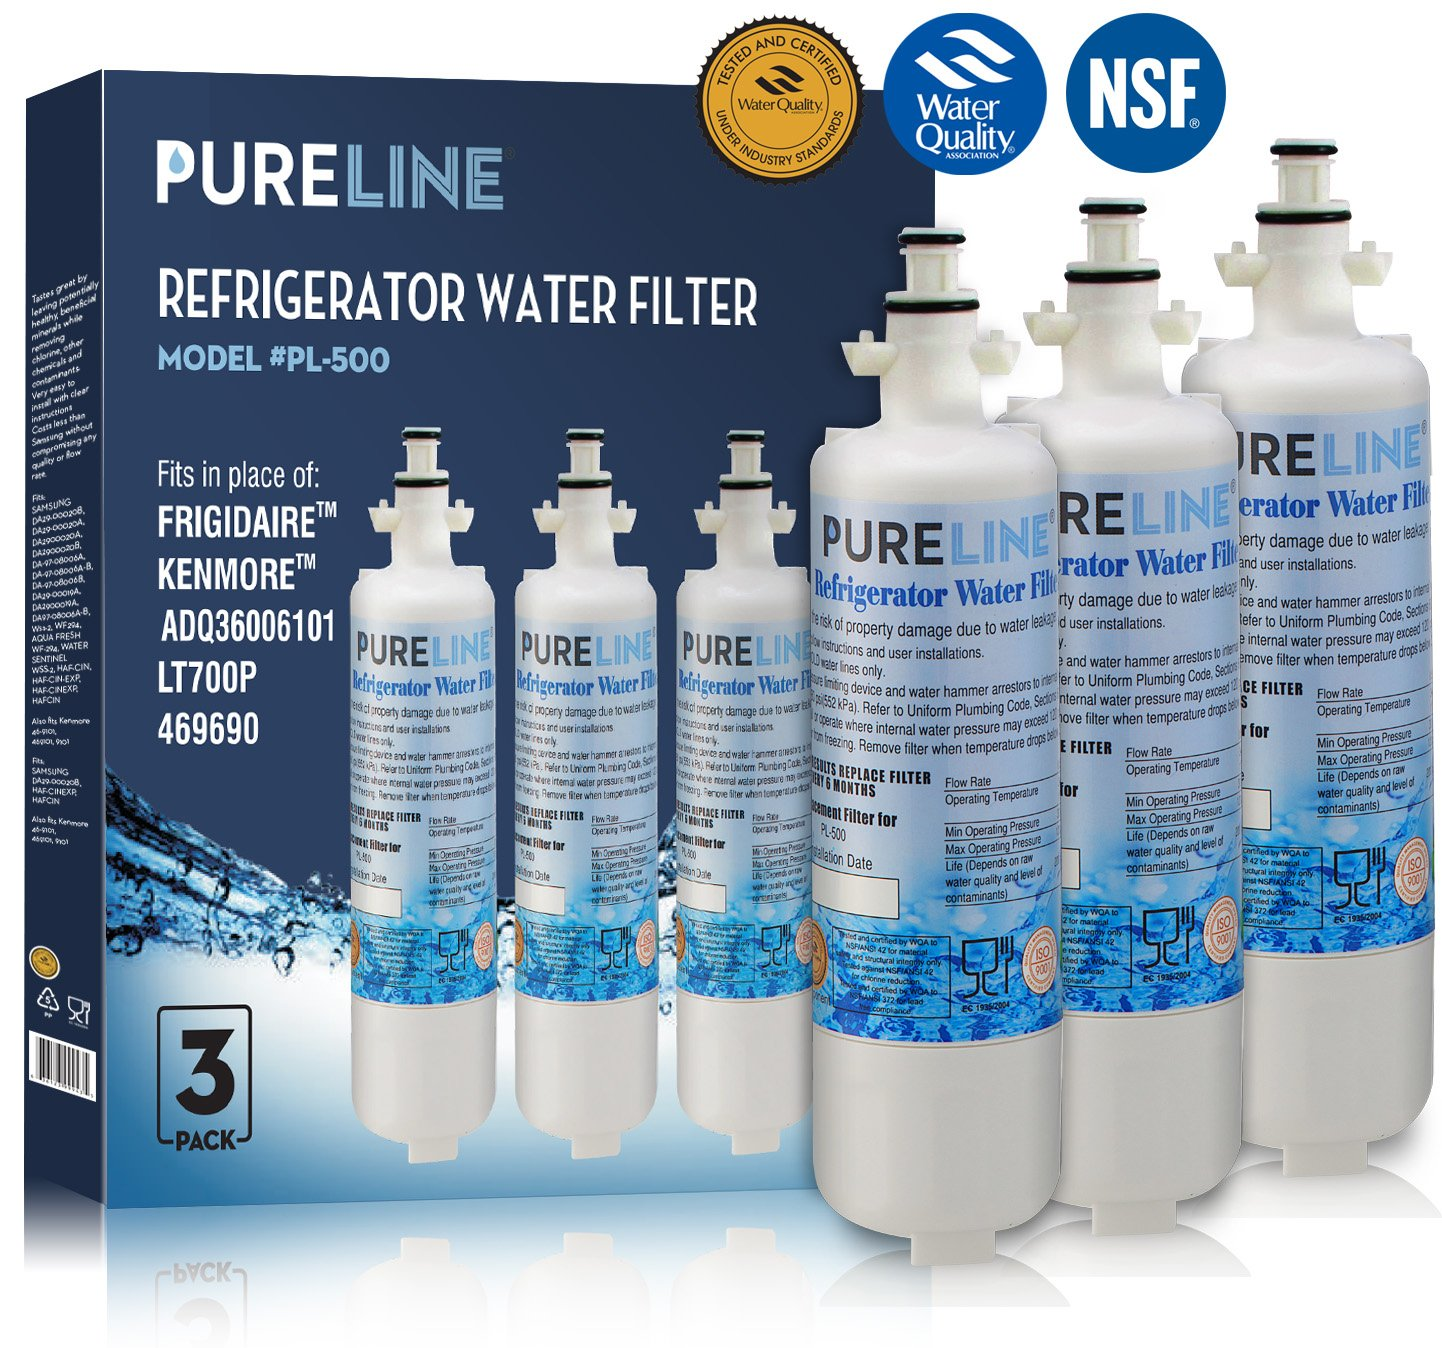 LG LT700P Refrigerator Water Filter, LG ADQ36006101 Compatible Water Filter, Kenmore 46-9690 (9690) Compatible Water Filter Replacement - Refrigerator - Also Fits WSL-3,WF700 (3 Pack)